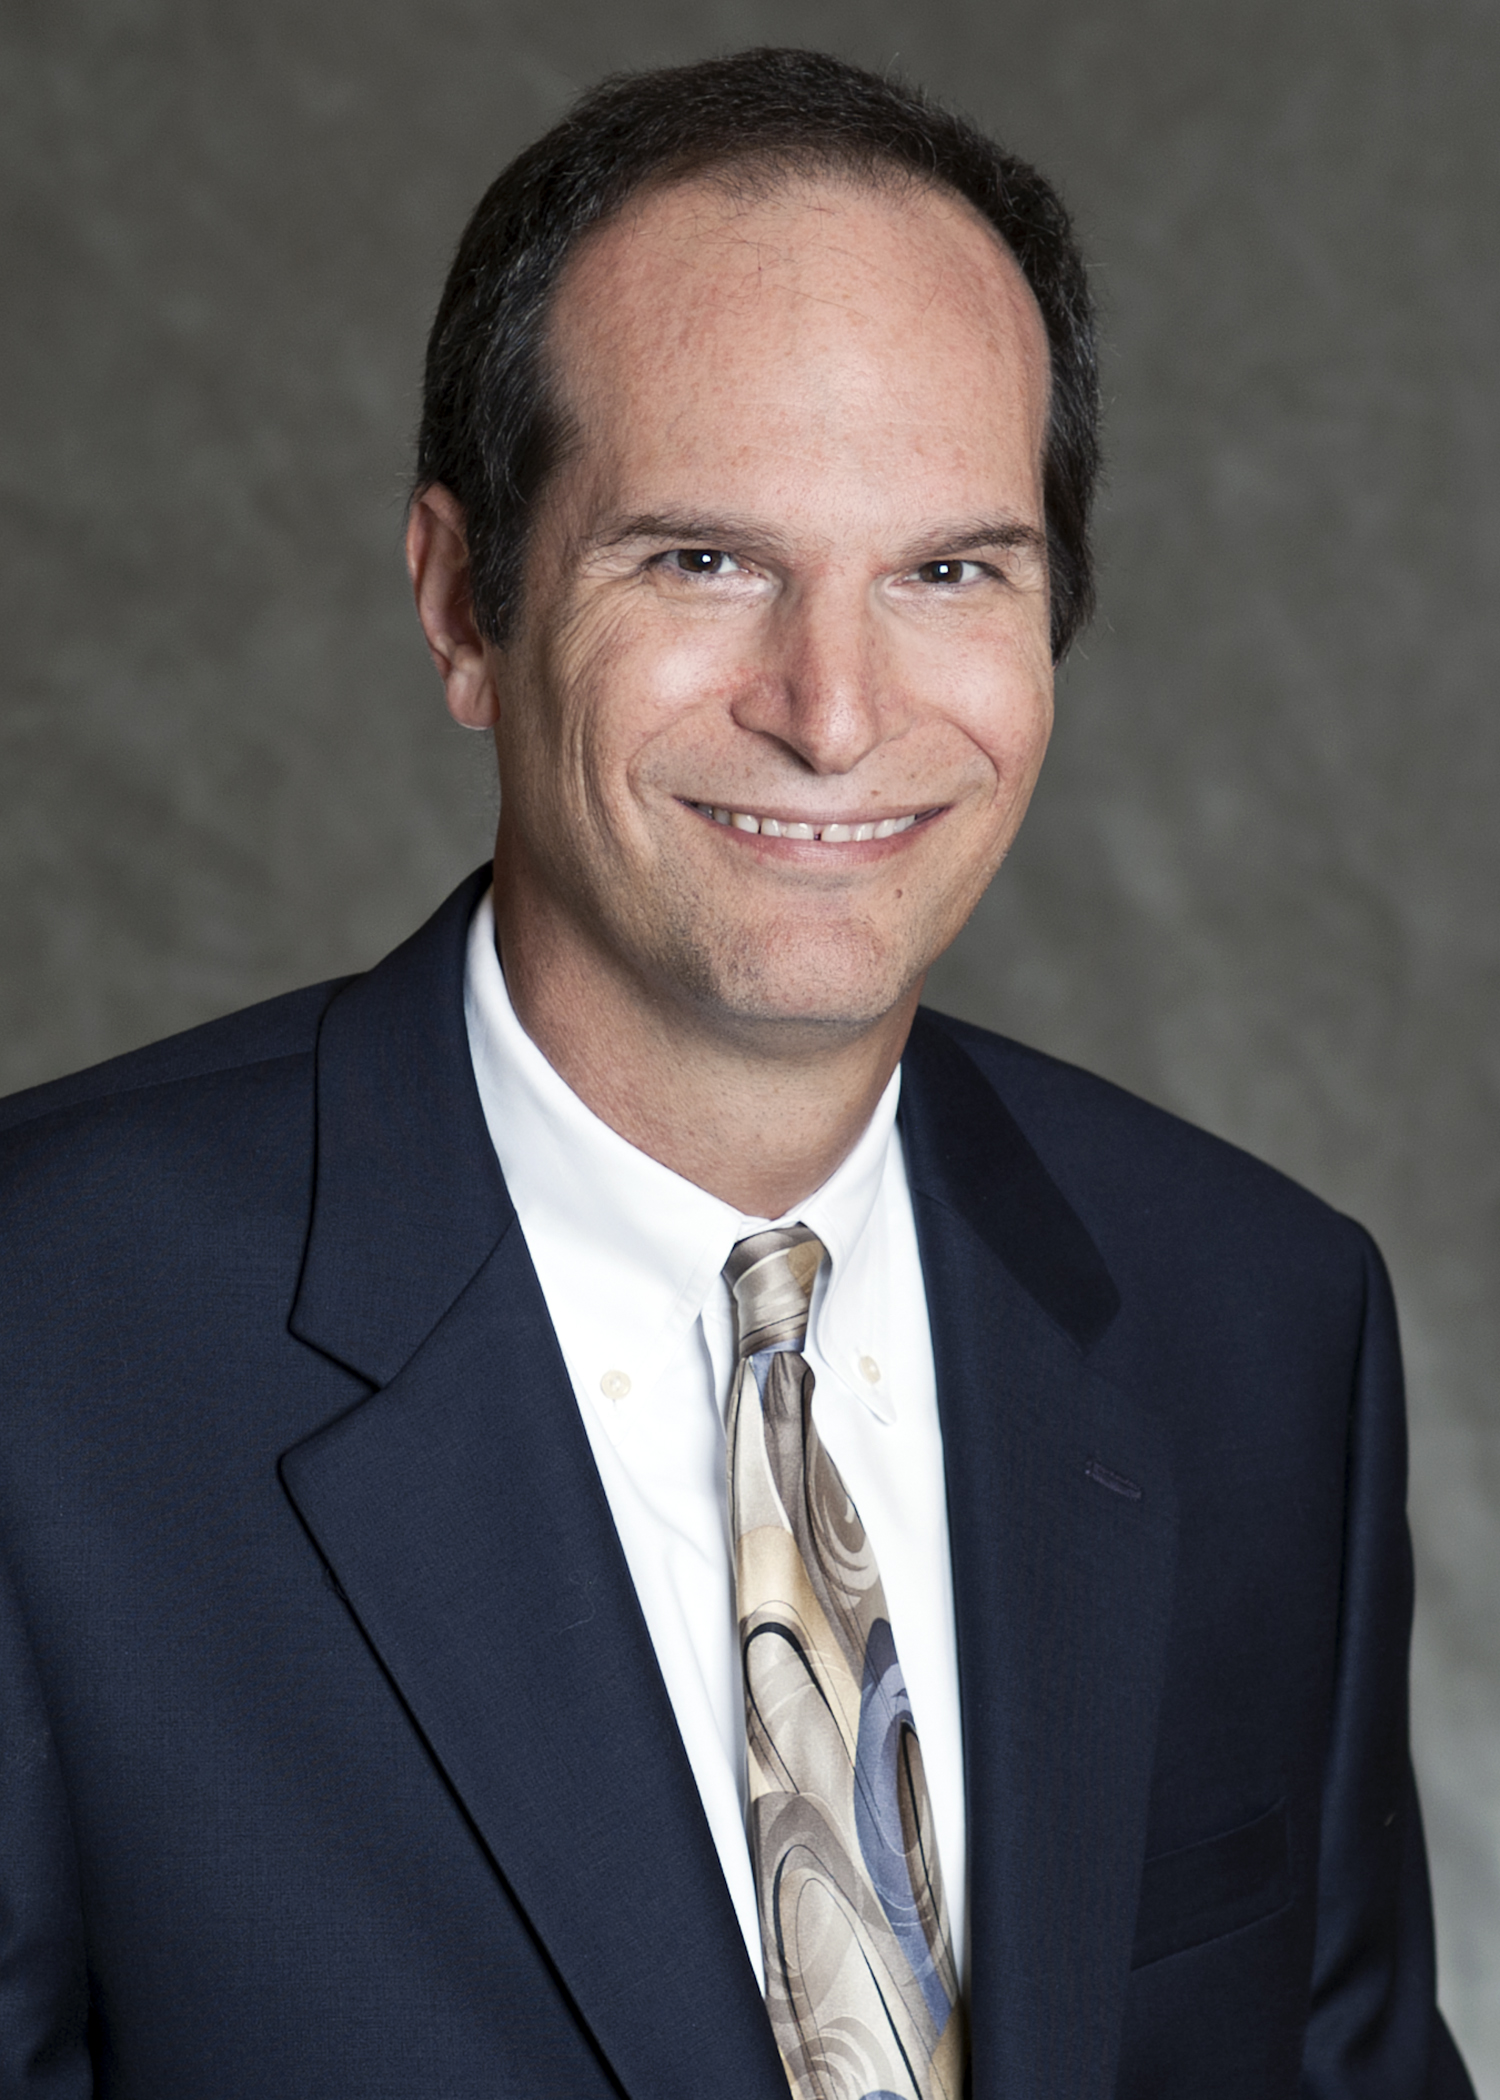 Peter N. Kaufman, MD, AGAF